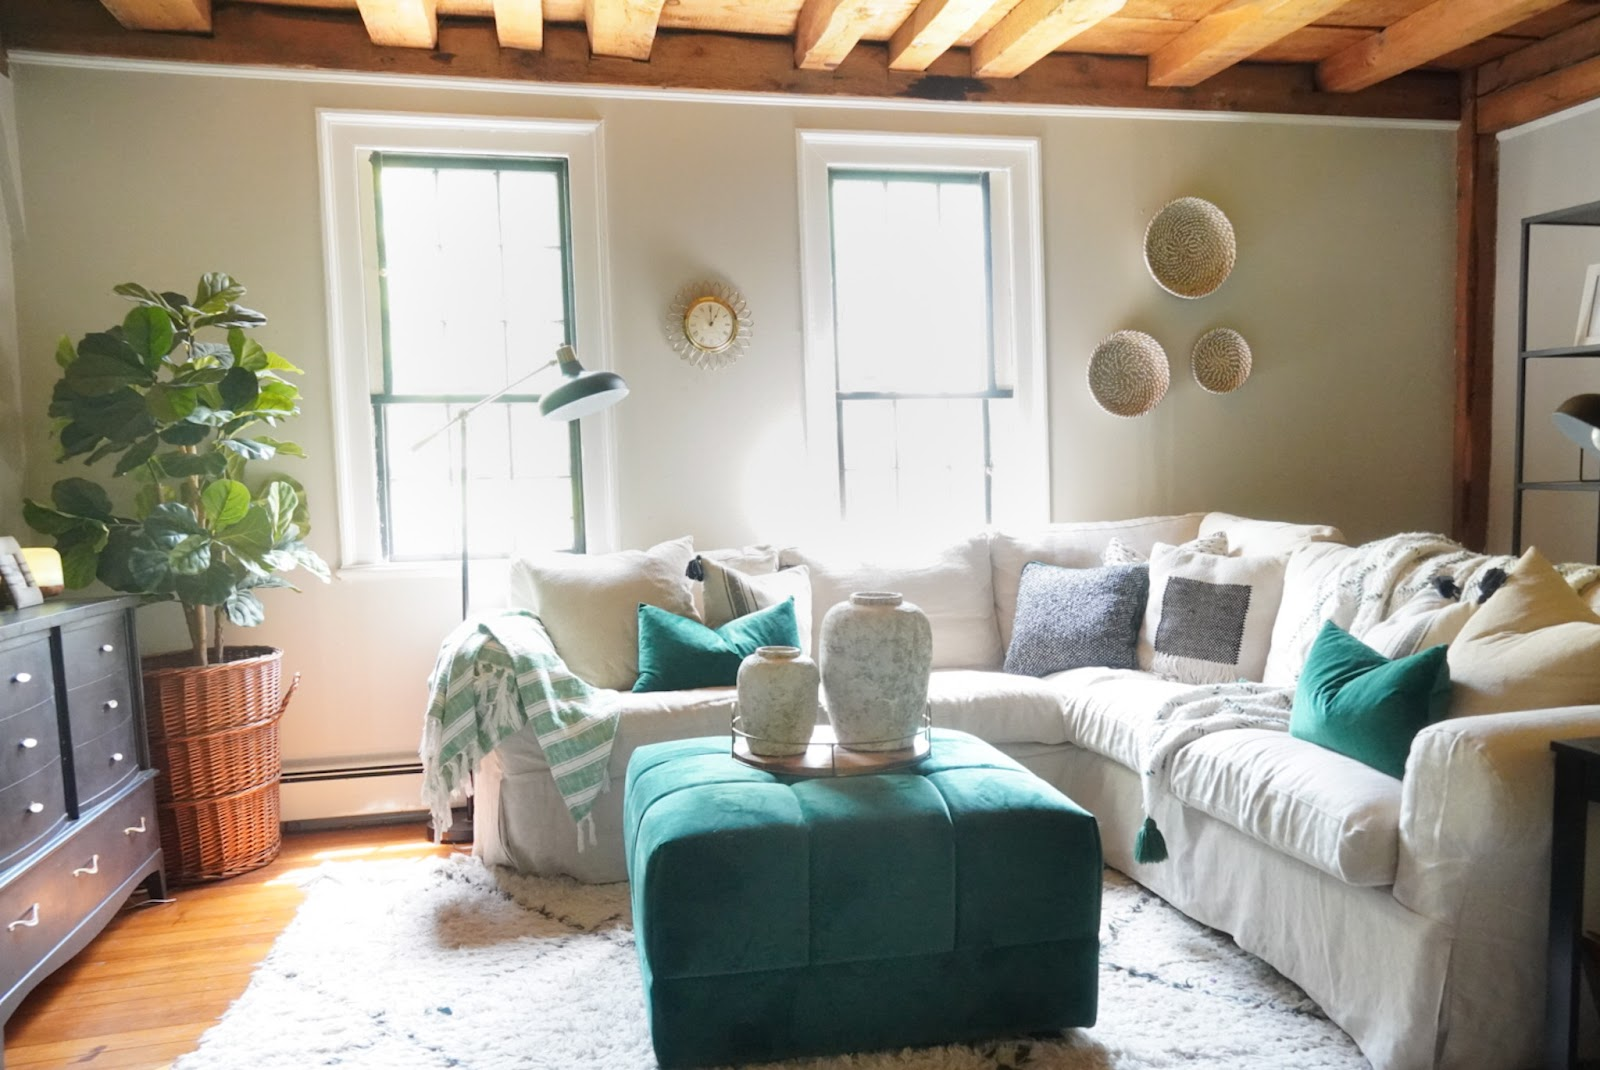 Living room with a white slipcover couch, green ottoman, and white a green throw pillows.